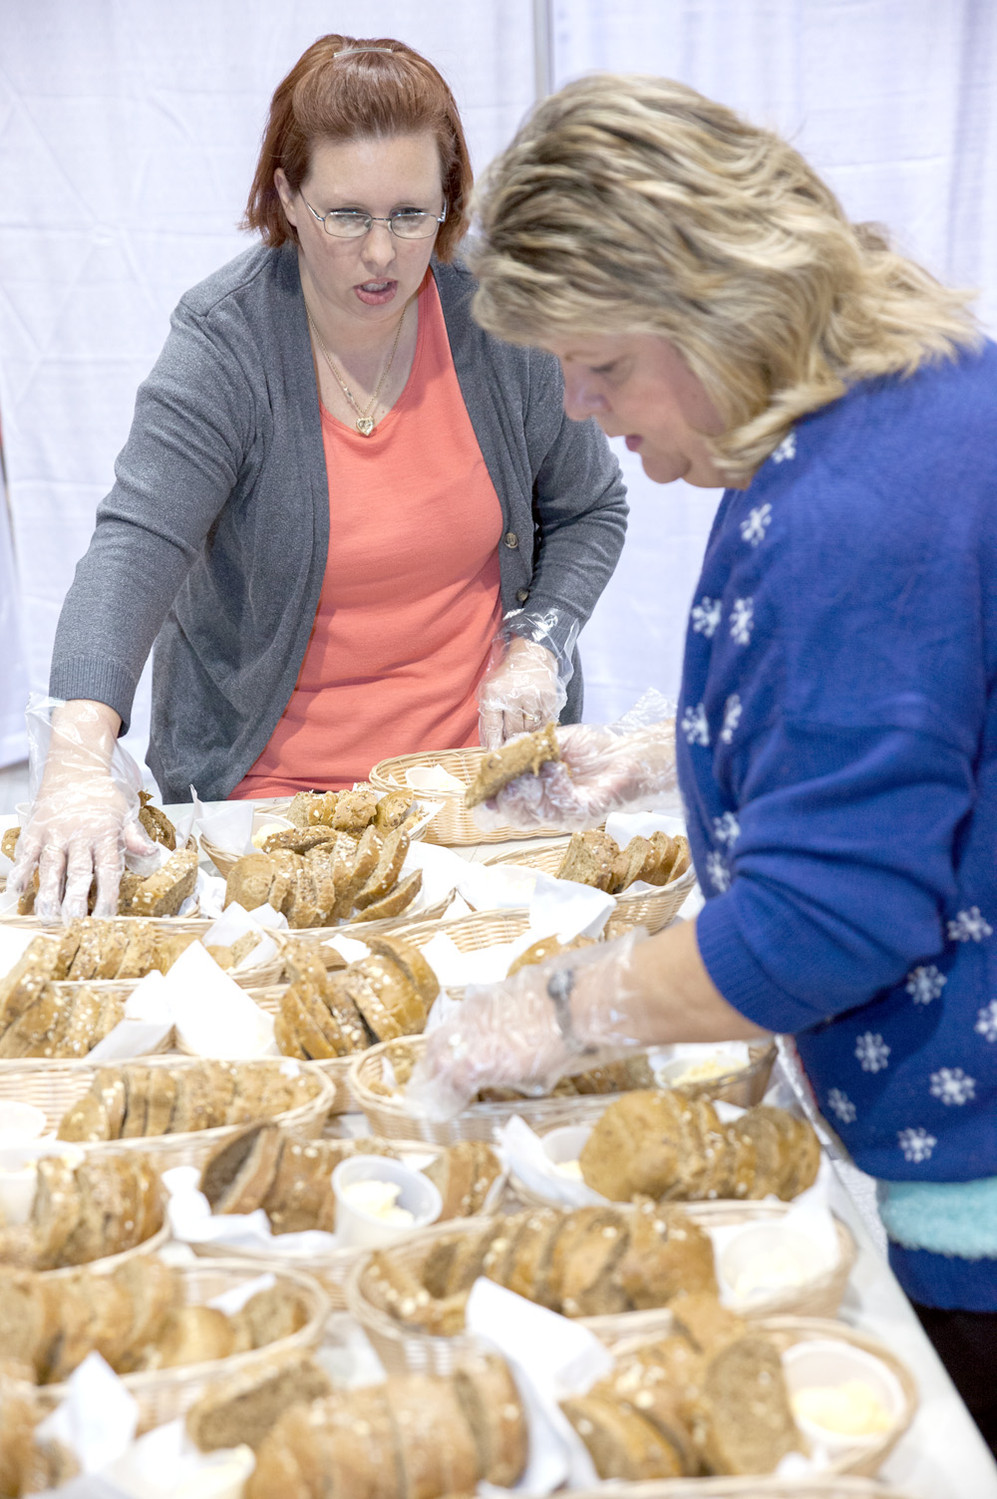 VOLUNTEERS Tonya Young, left, and Pam Stone prepare the bread baskets that are to be placed on each dining table for event attendees to enjoy with their meal.